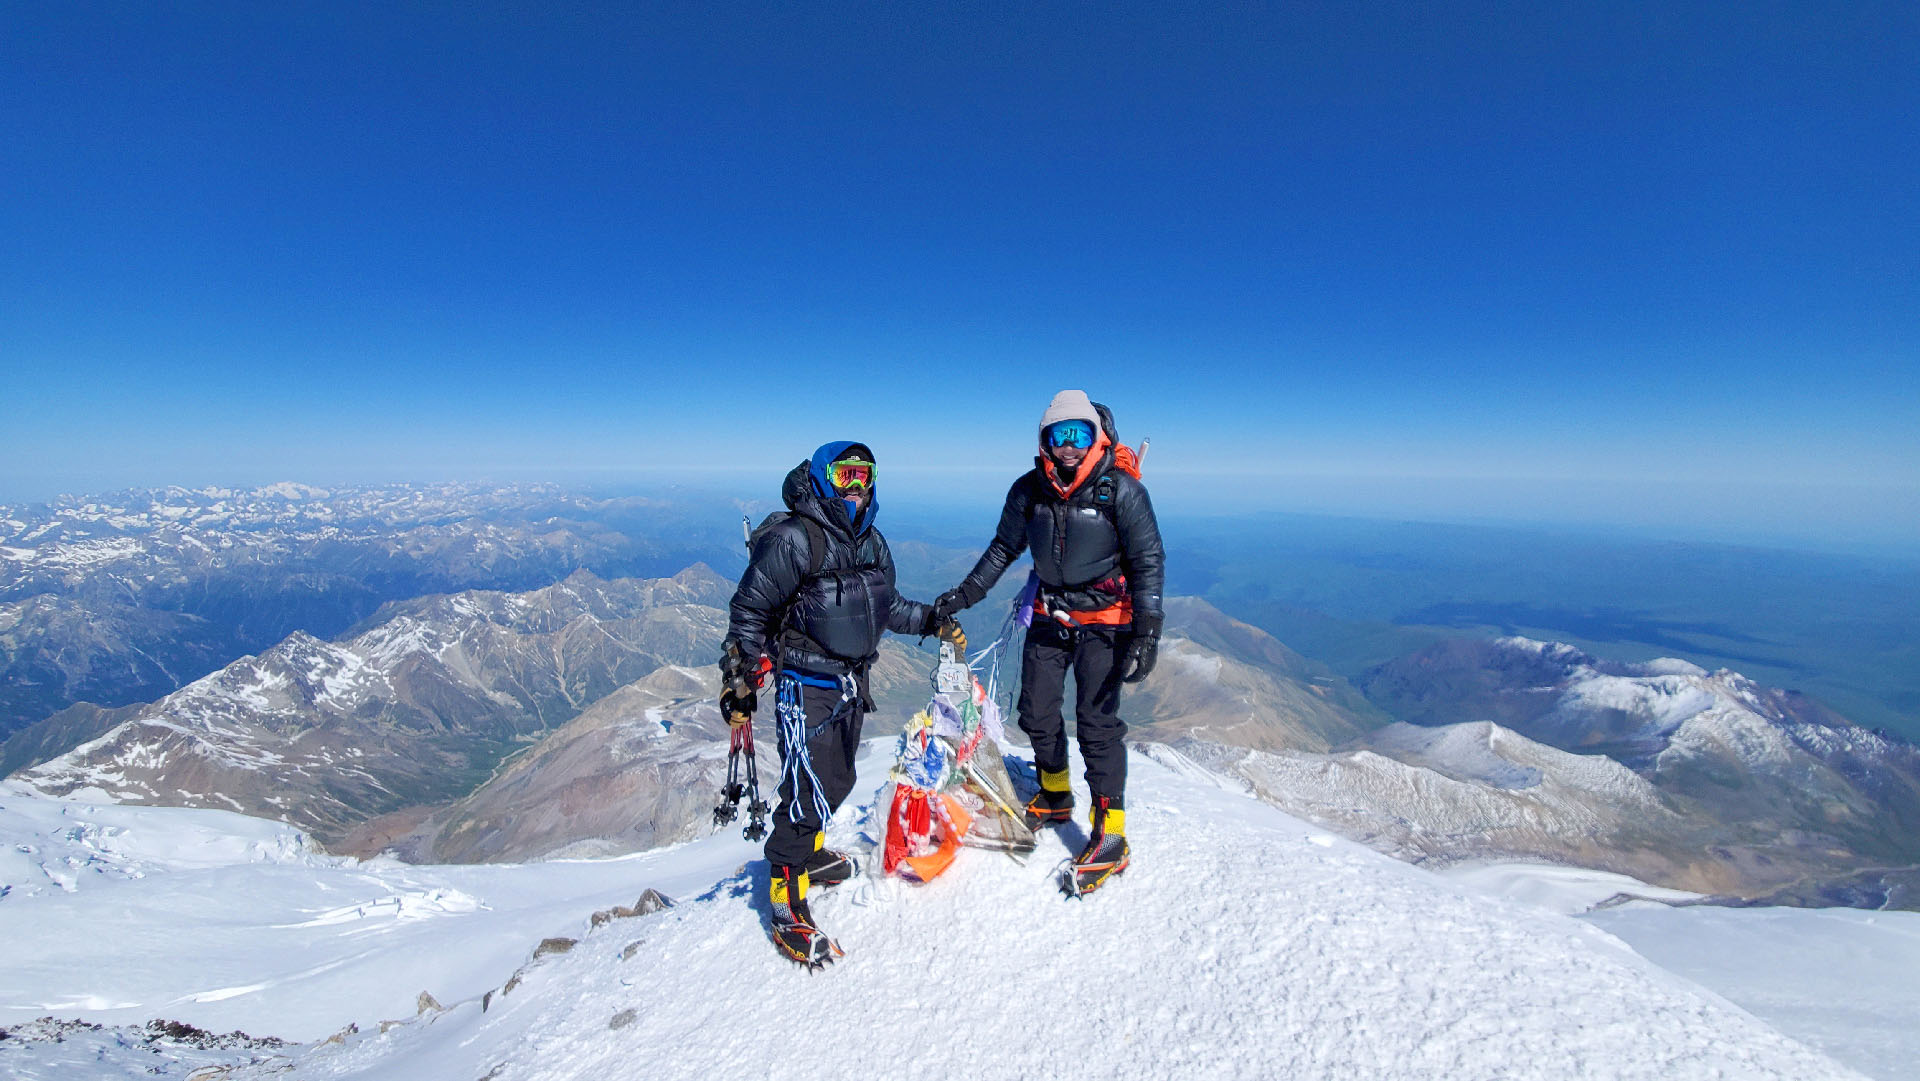 K2 Standing at the summit of Mt. Elbrus